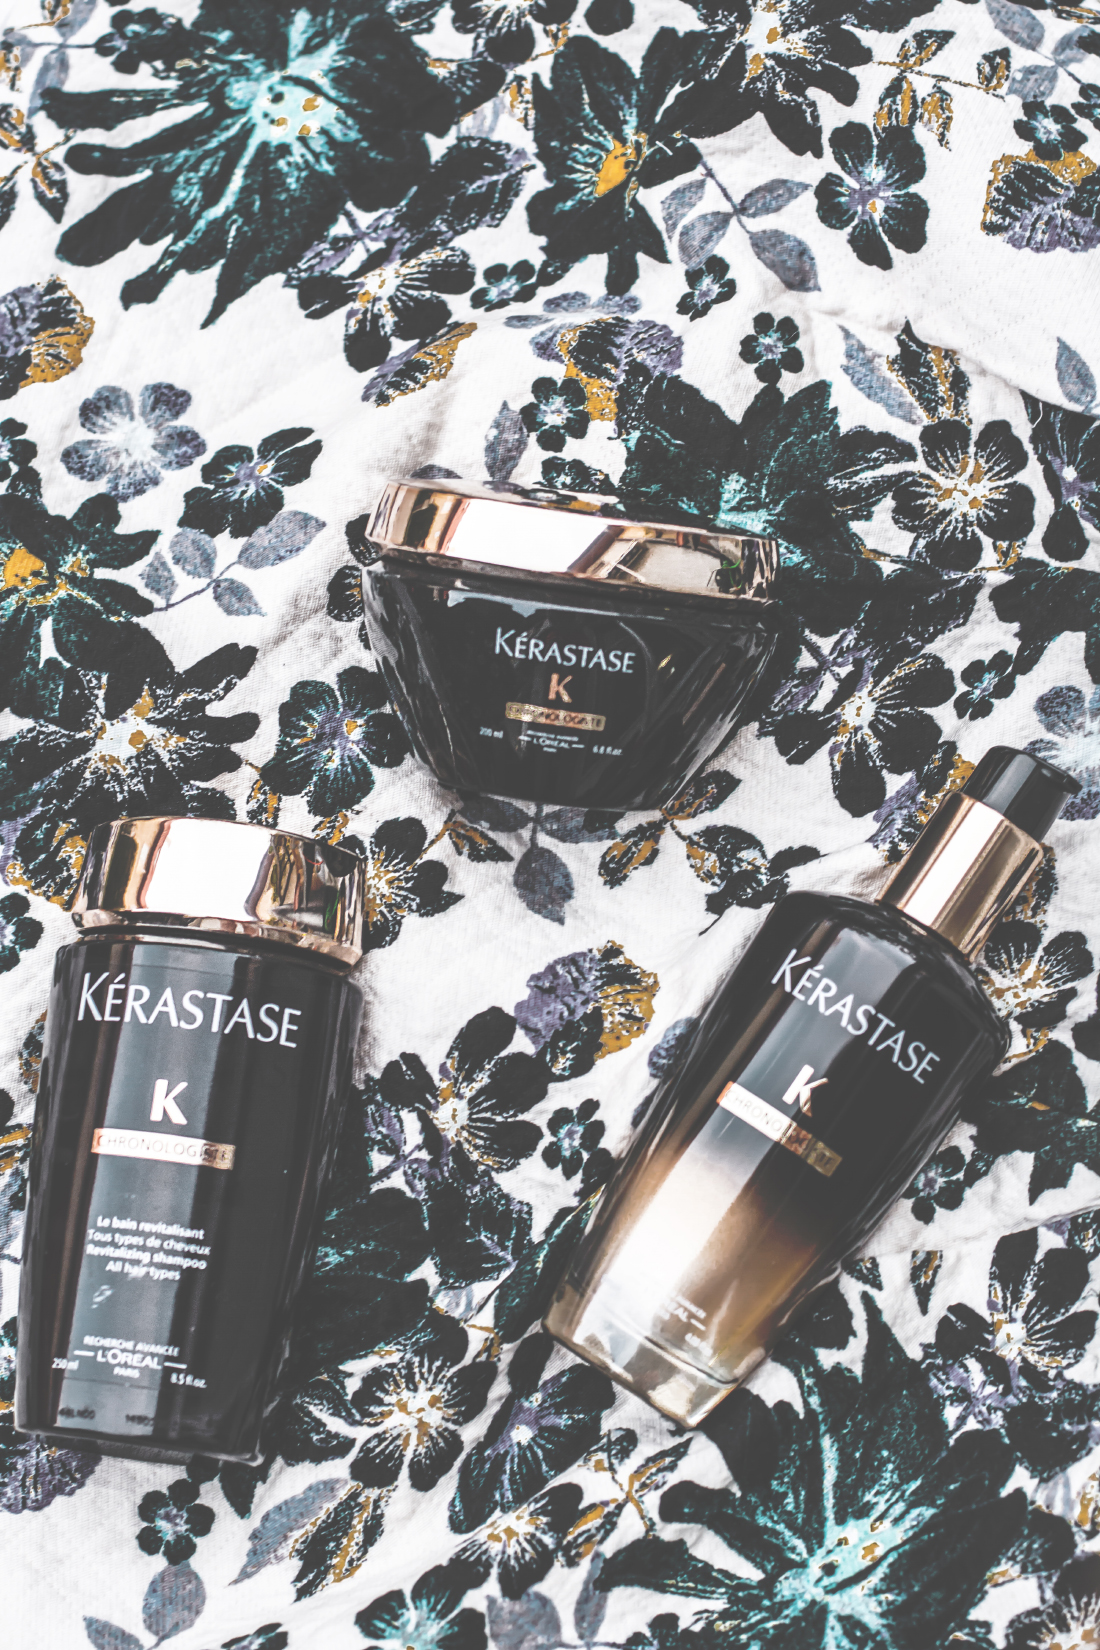 Kerastase Chronologiste Haarlinie